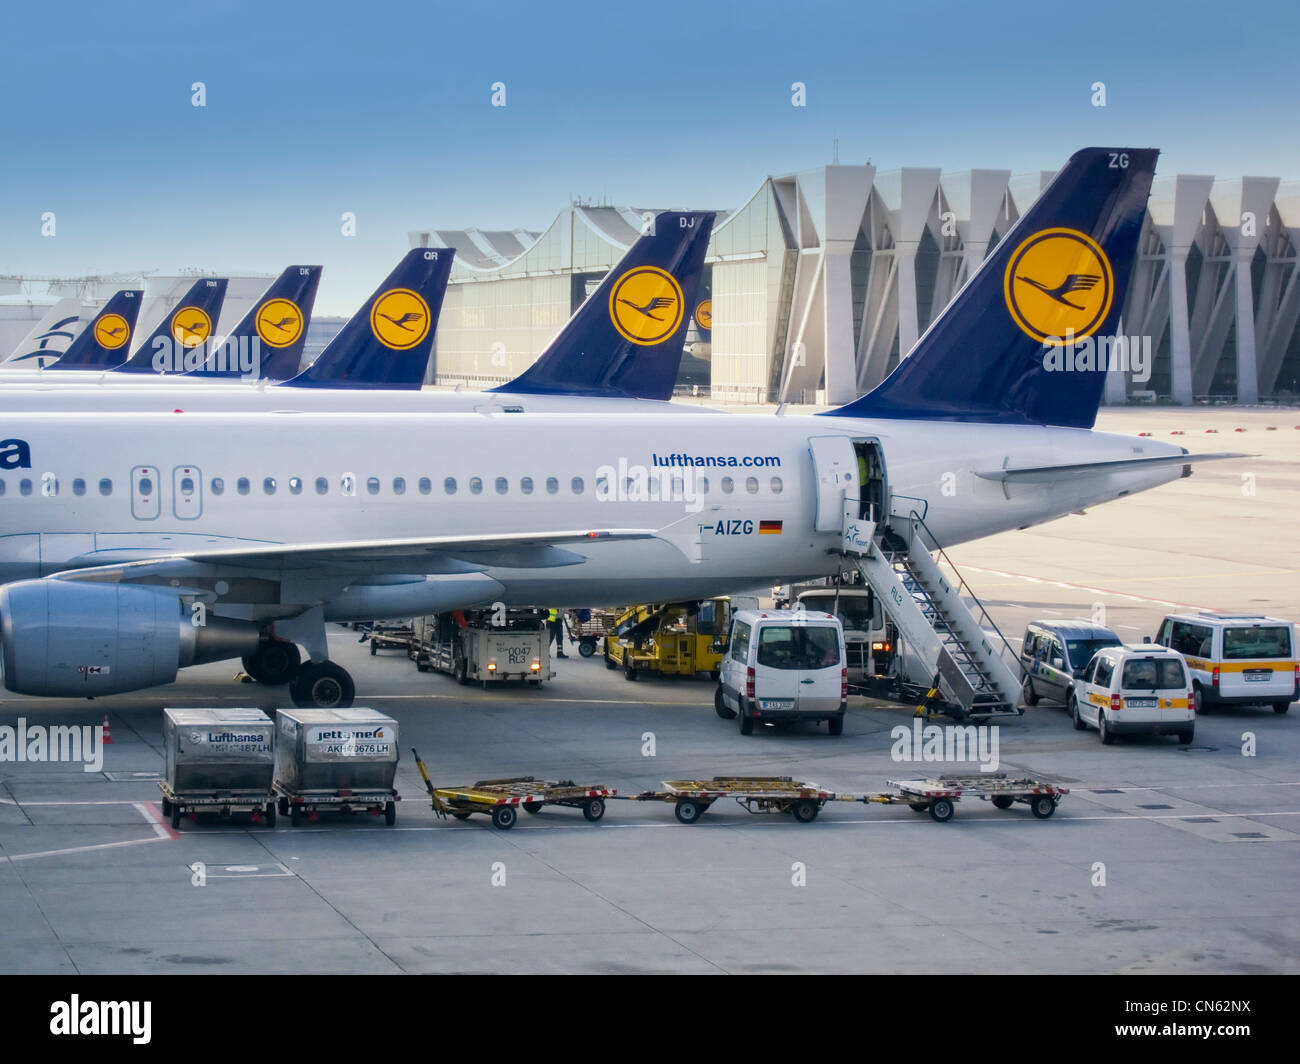 Rear part of several planes landed at an airport - Stock Image